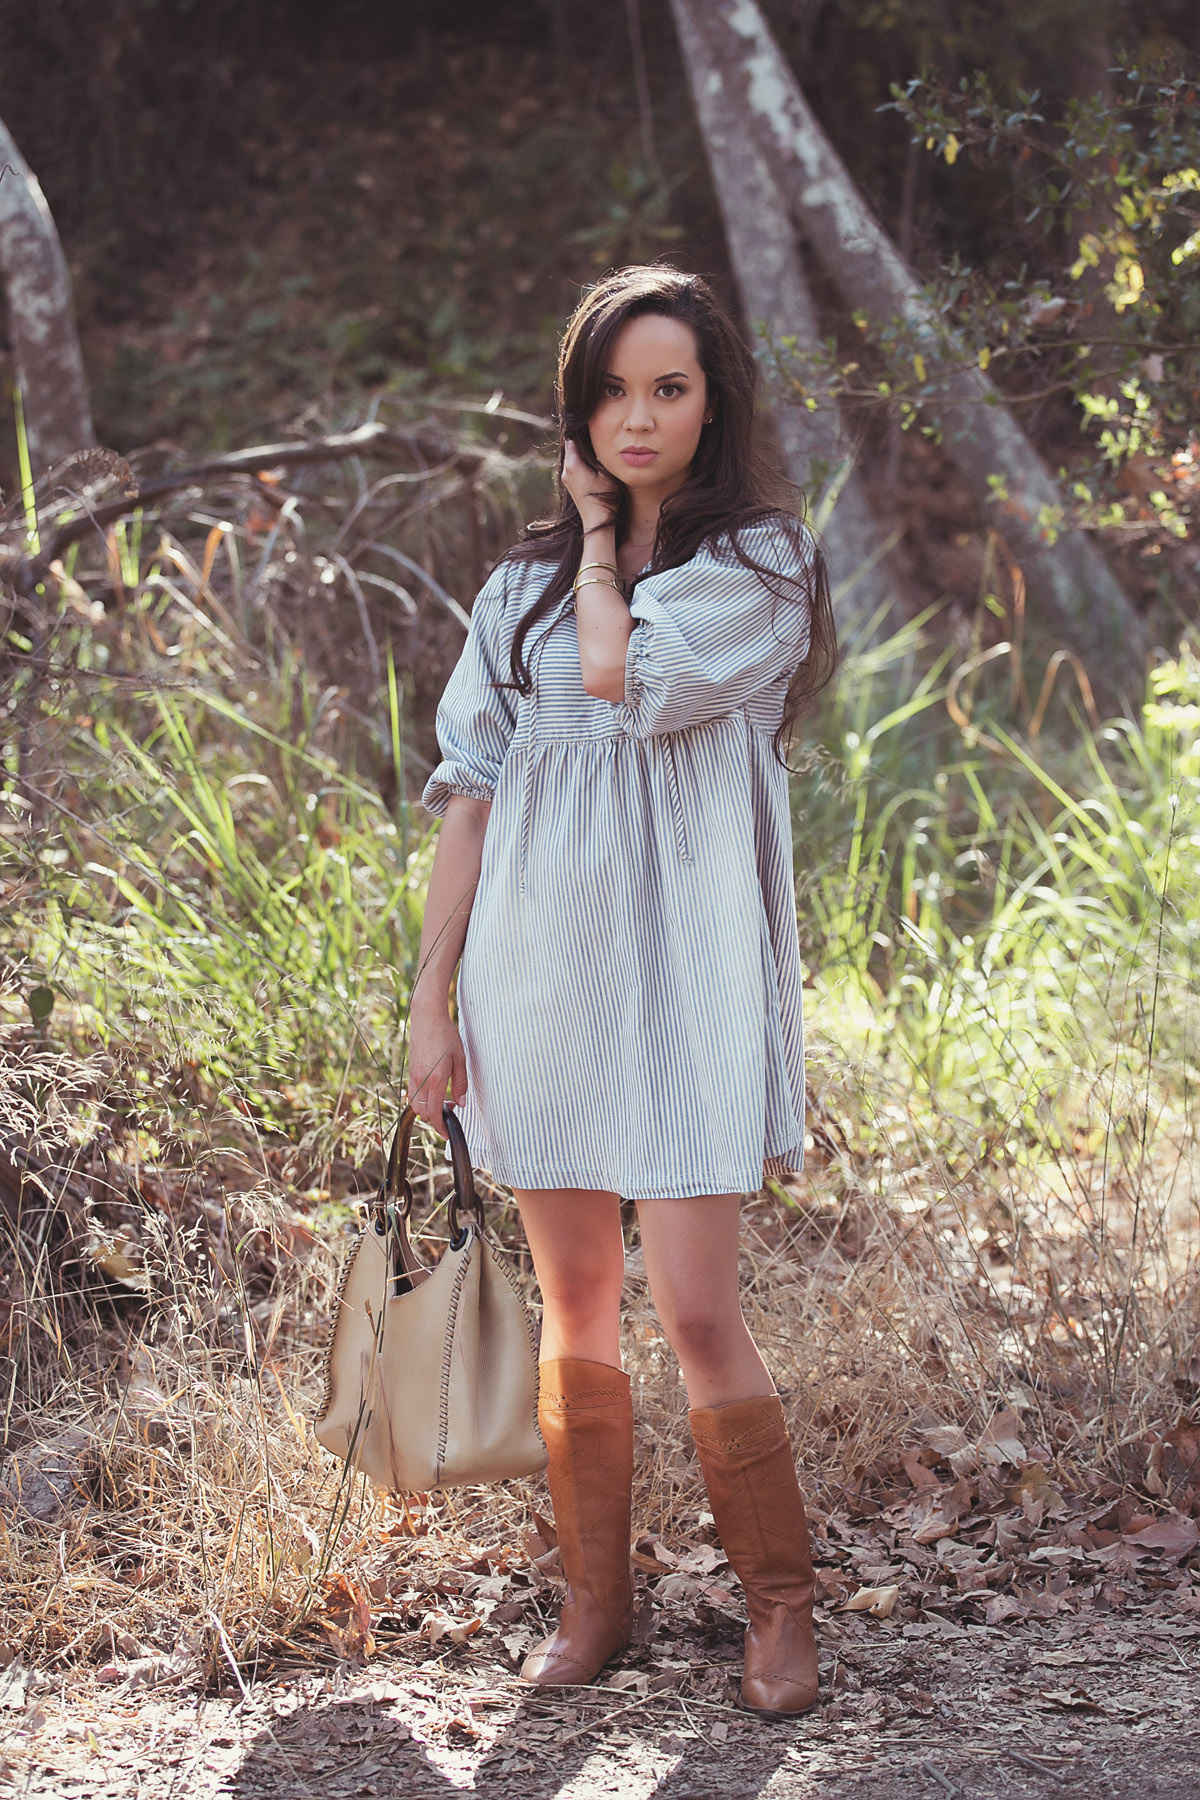 denim dress, vintage boots, cowboy boots, drybar, current elliott dress, XIV karats necklace, gucci purse, los angeles, la model, striped dress